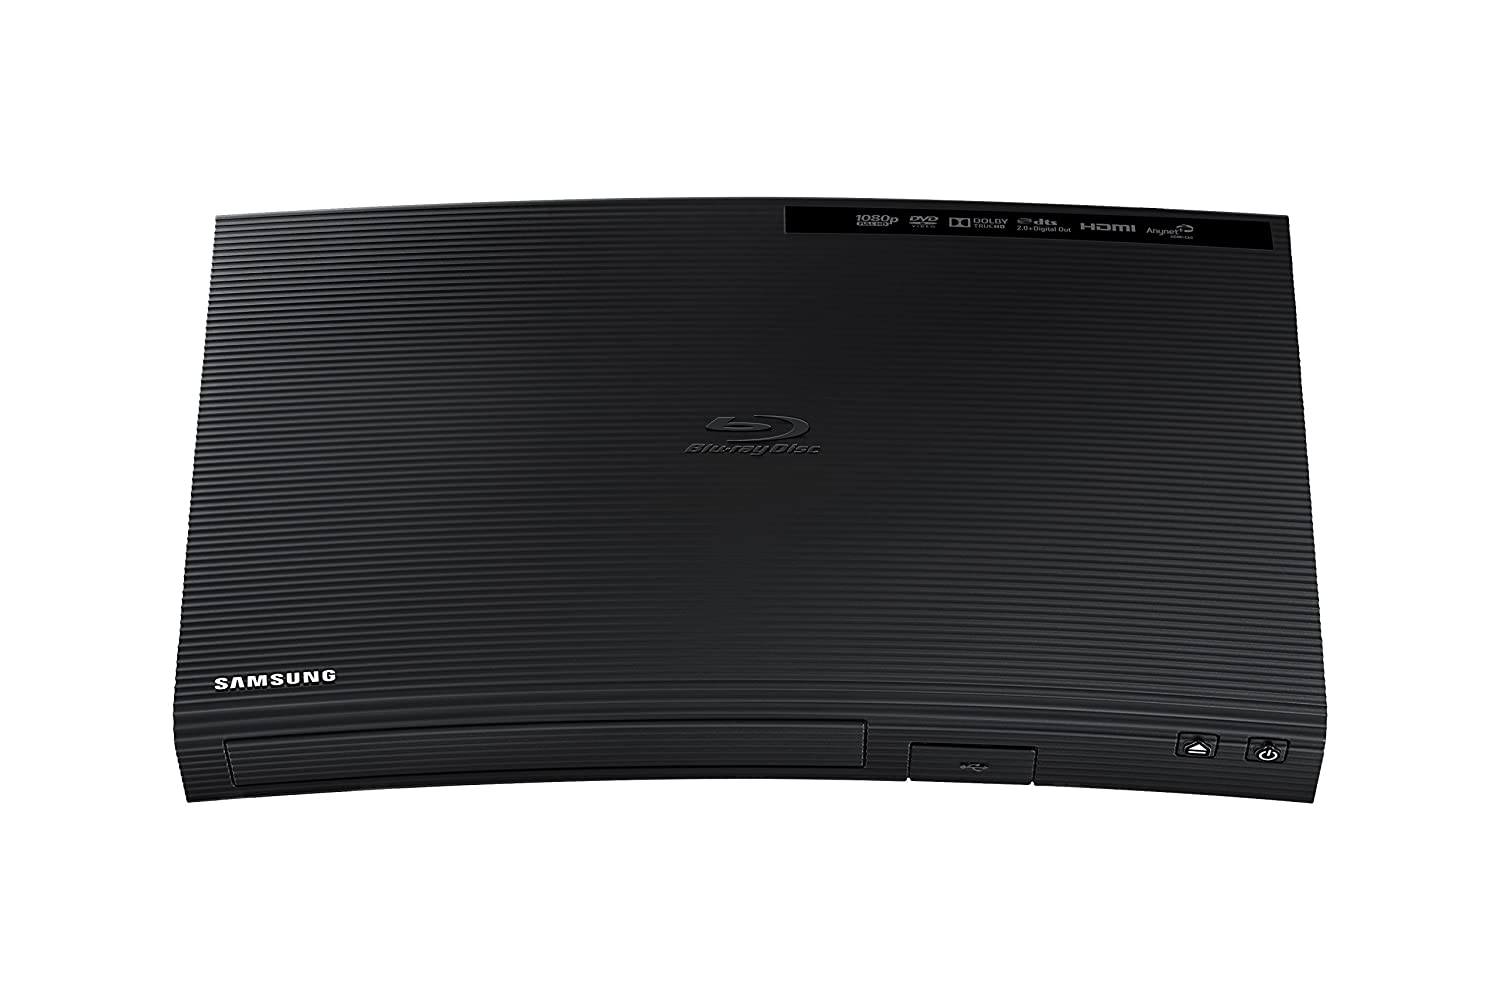 Samsung BD-J5100 Curved Blu-ray Player (2015 Model)